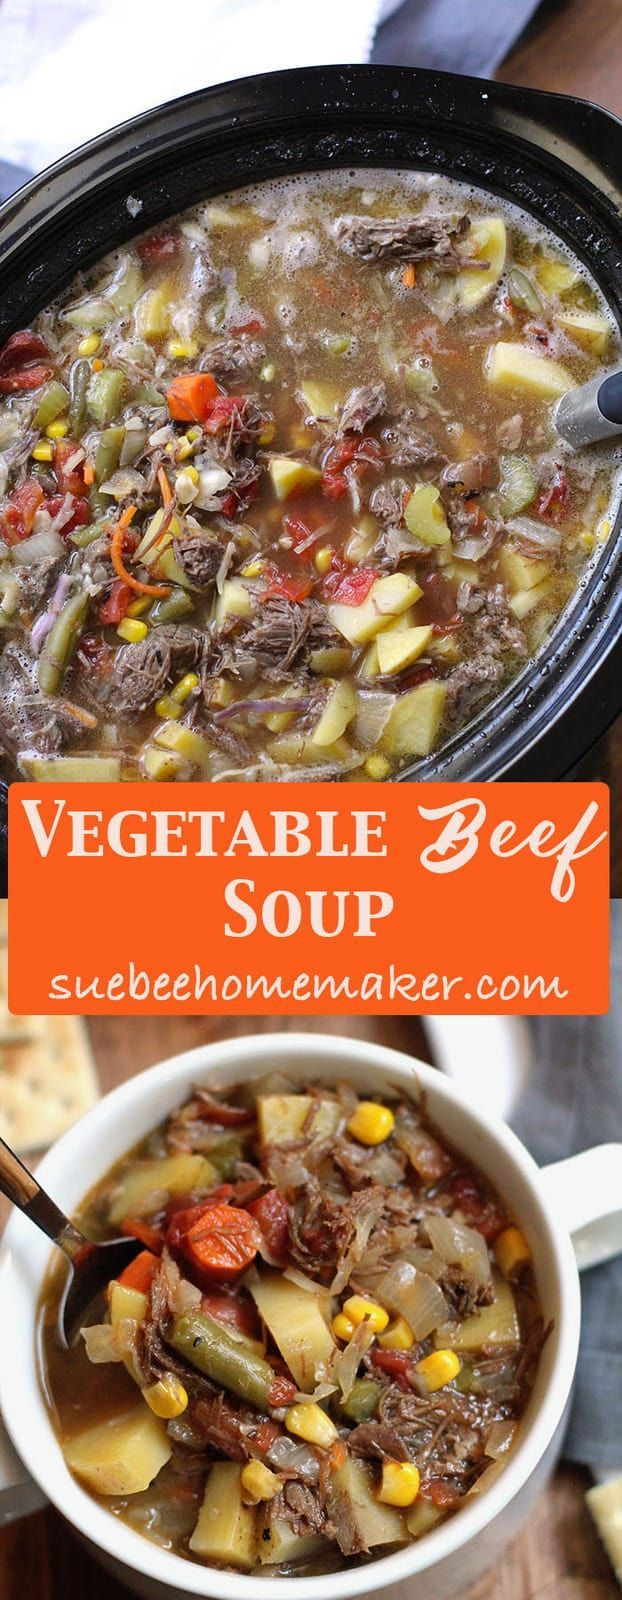 Vegetable Beef Soup is a stick-to-your-ribs kind of soup, combining a slow-cooked roast with tons of fresh veggies. Perfect for chilly nights! | suebeehomemaker.com